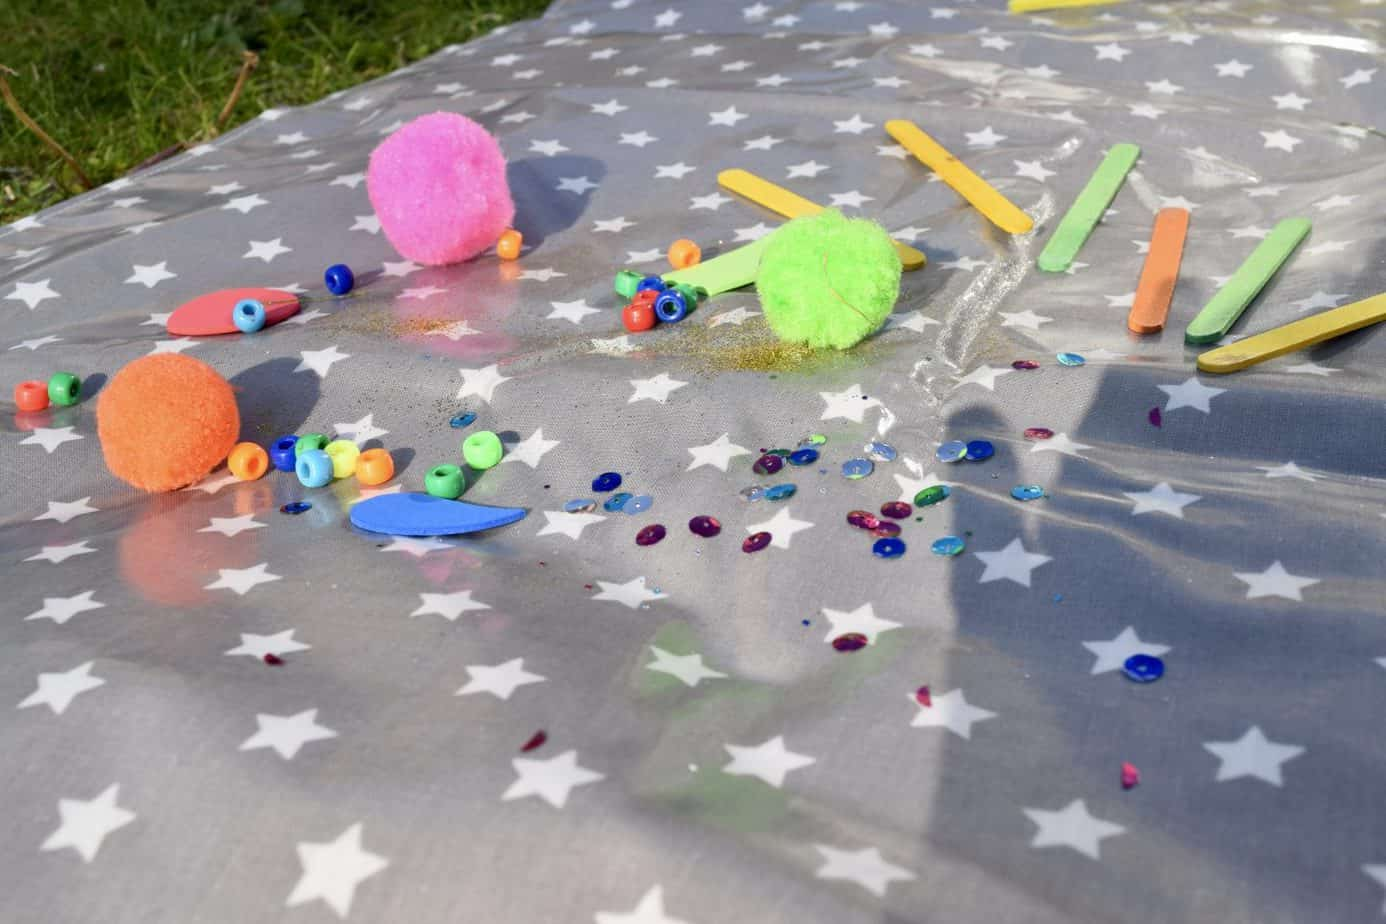 Lots of crafts on the messy me splash mat